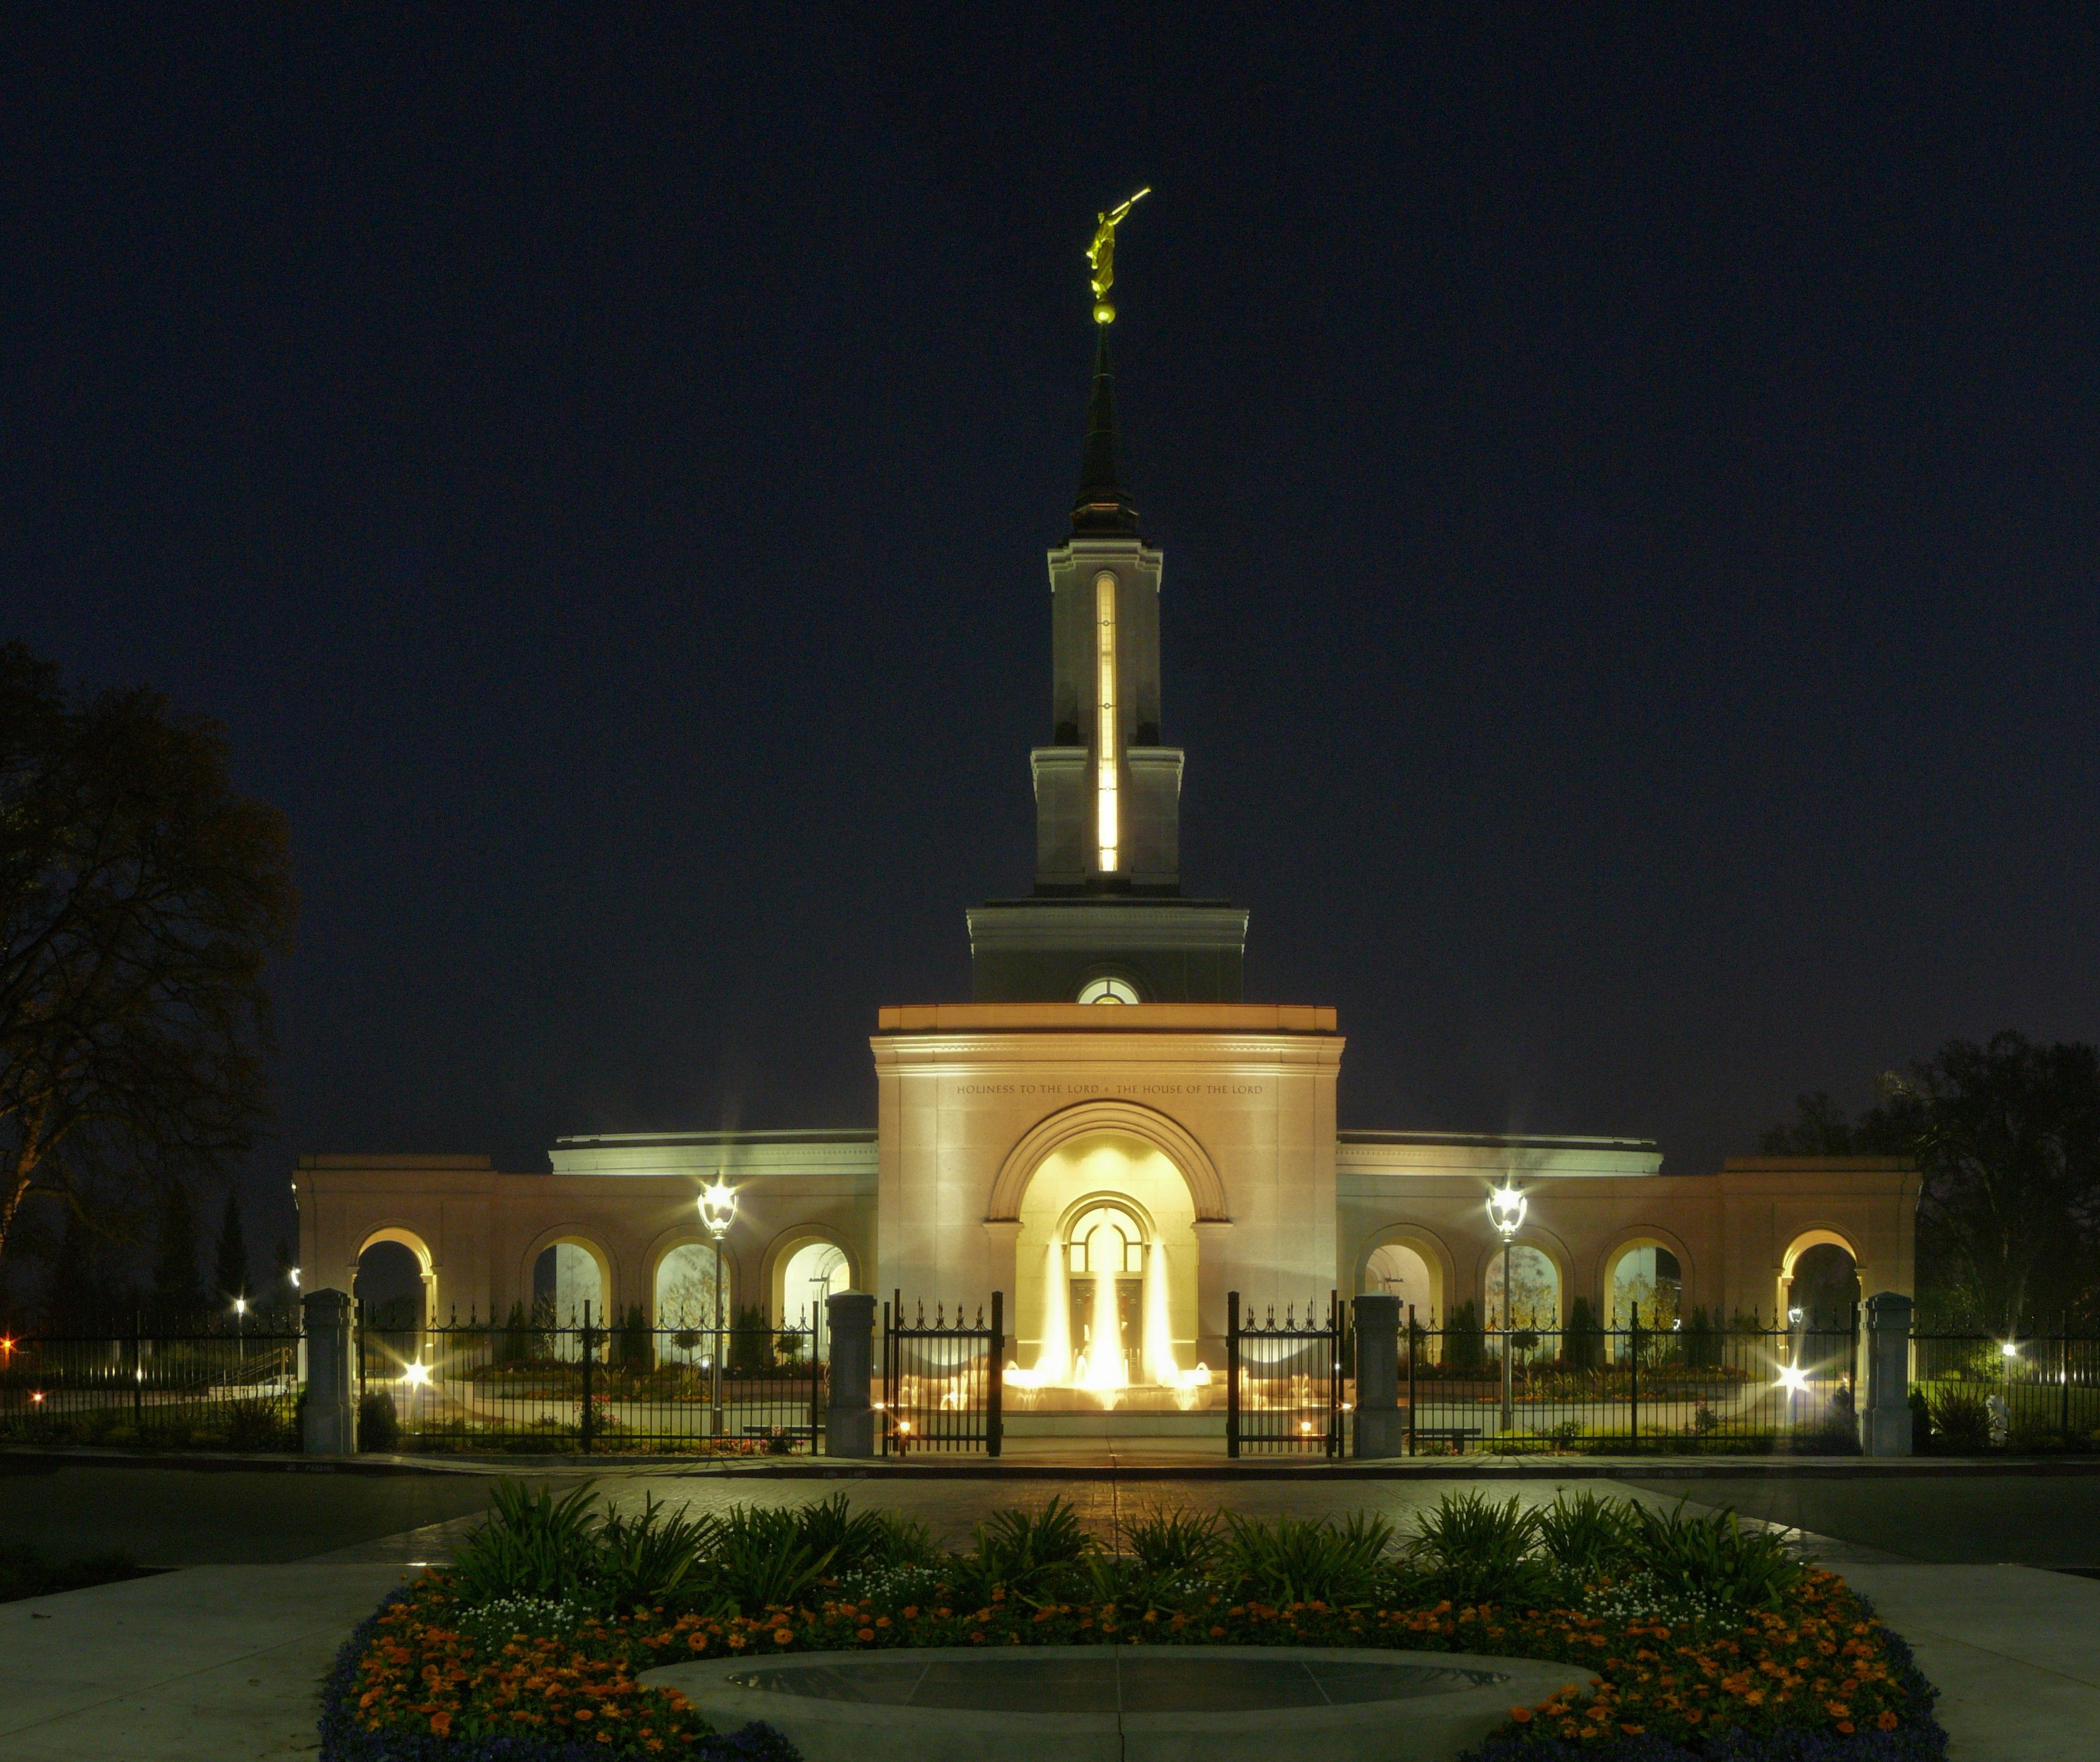 The Sacramento California Temple in the evening, including the fountains and entrance.